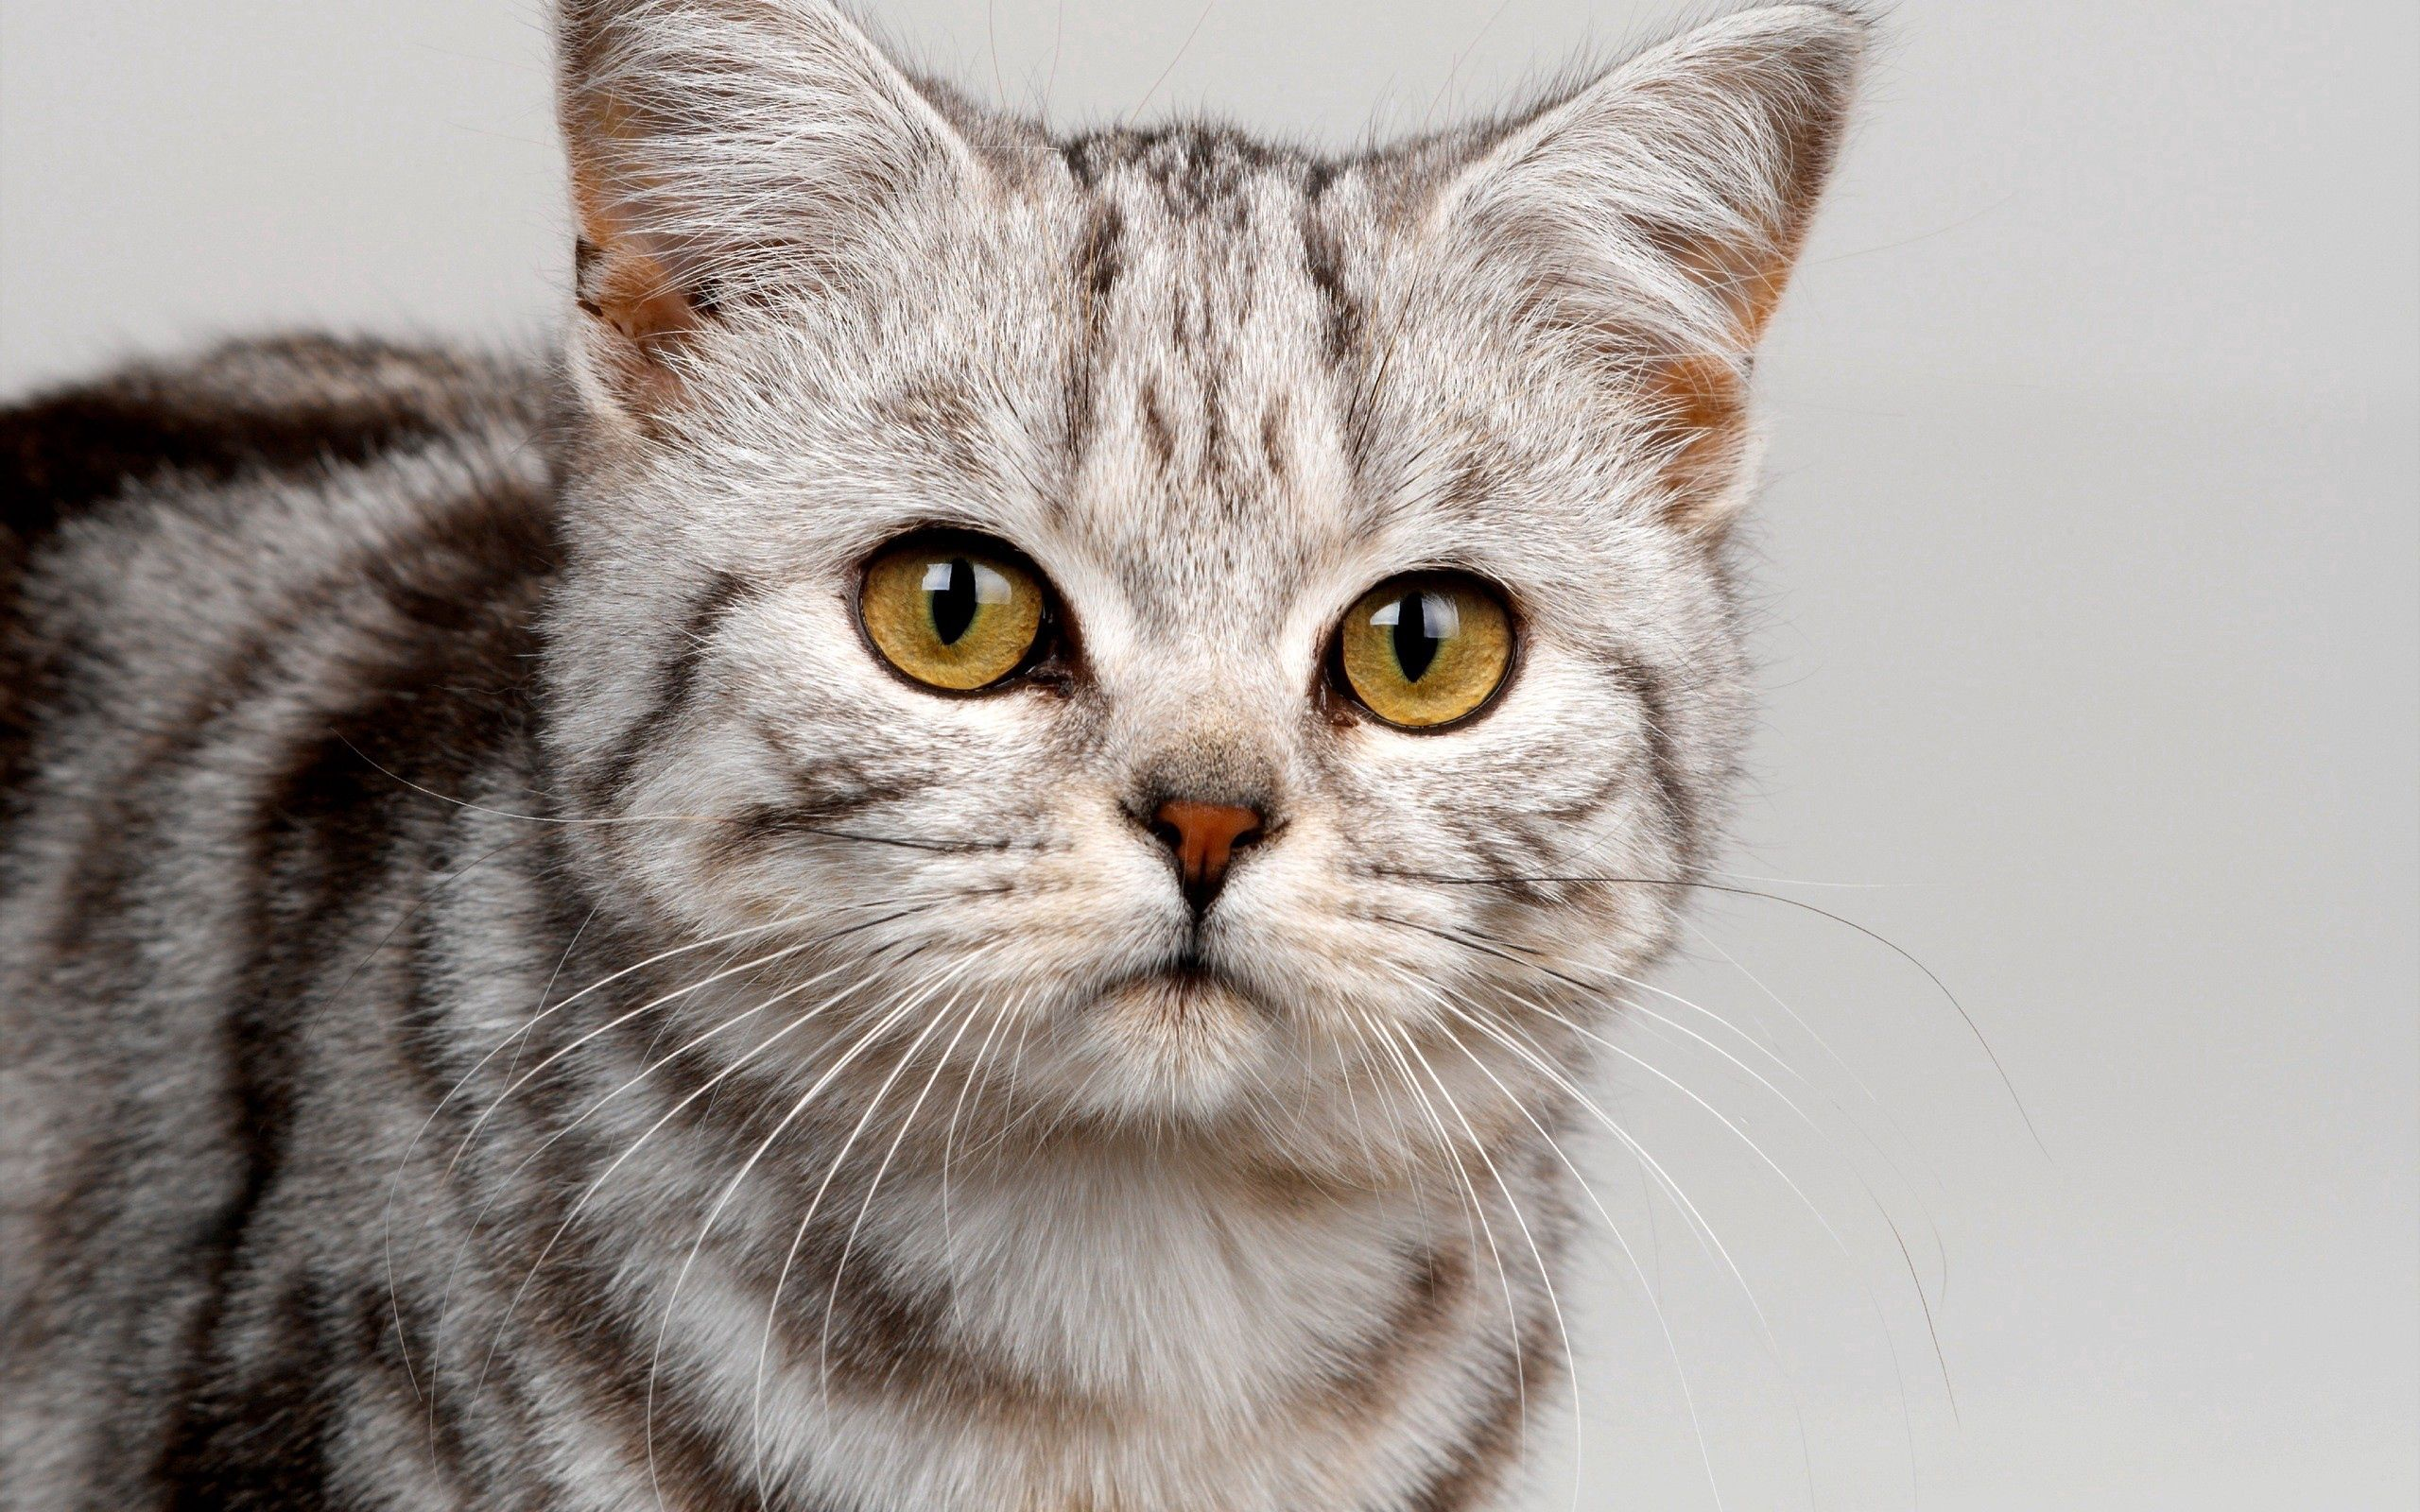 97685 download wallpaper Animals, Cat, Muzzle, Striped, Sight, Opinion, Nice, Sweetheart, Kitty, Kitten screensavers and pictures for free